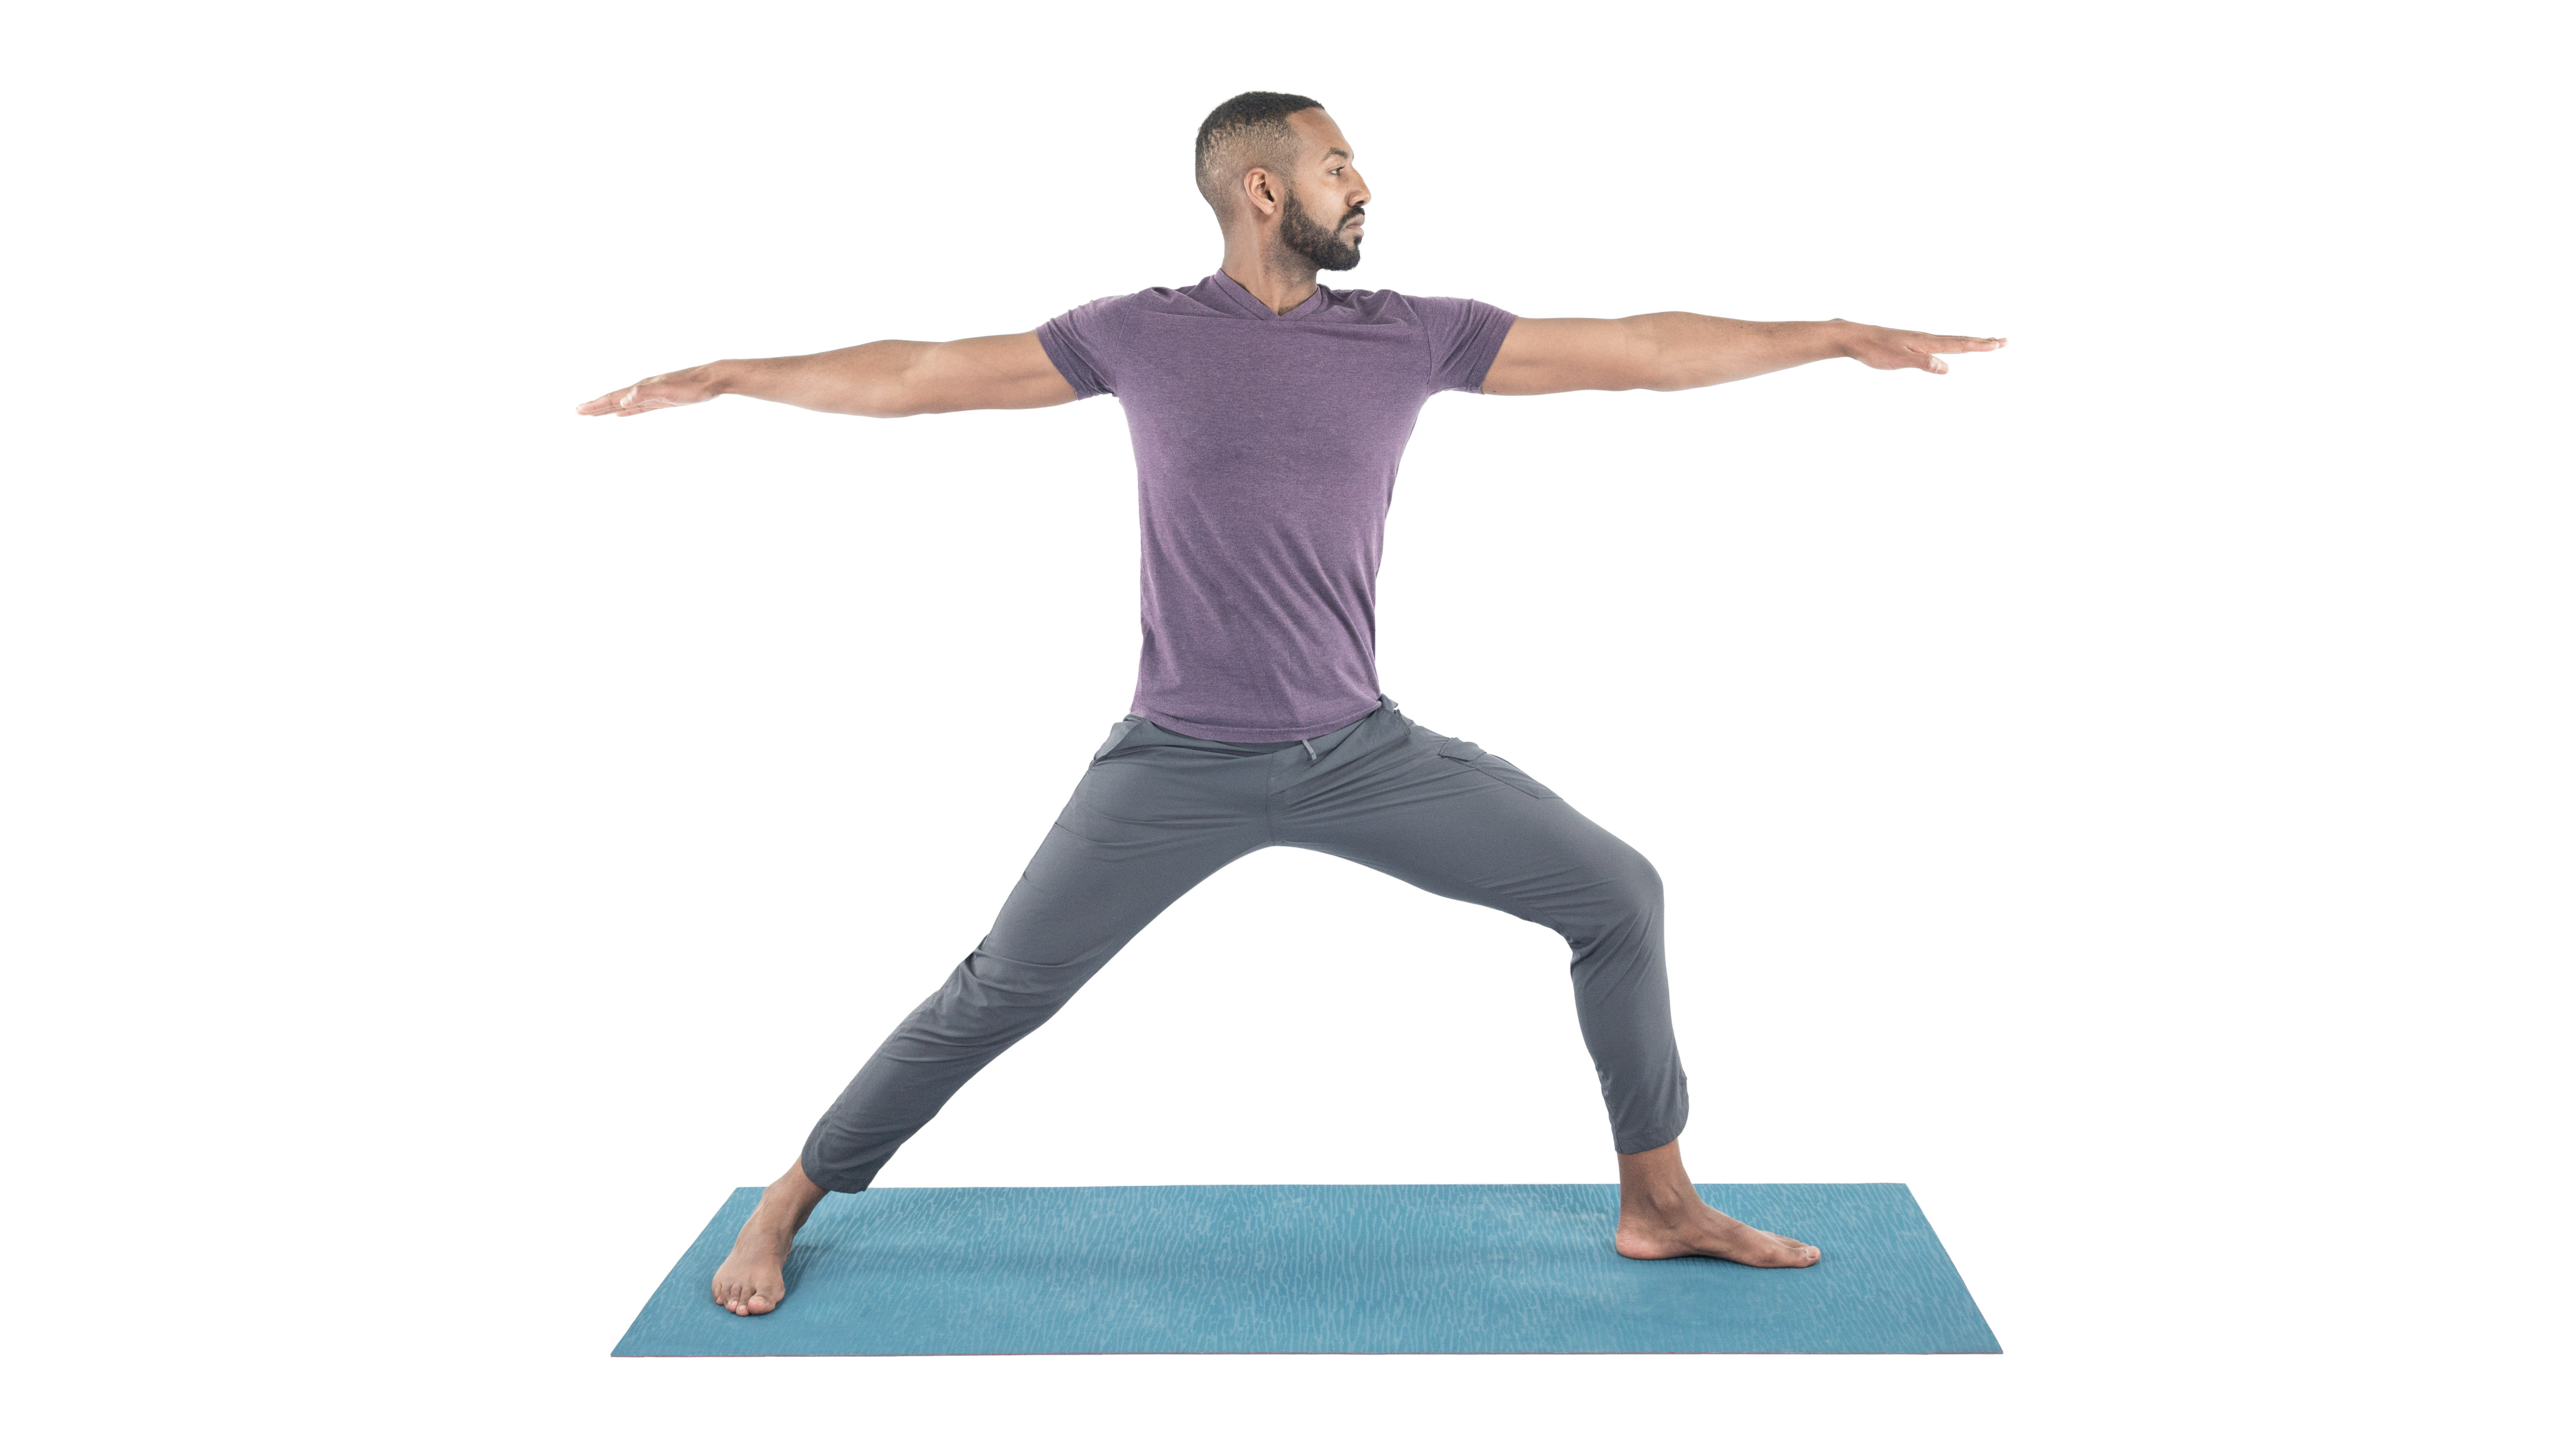 yoga man practicing virabhadrasana 2, warrior 2 pose